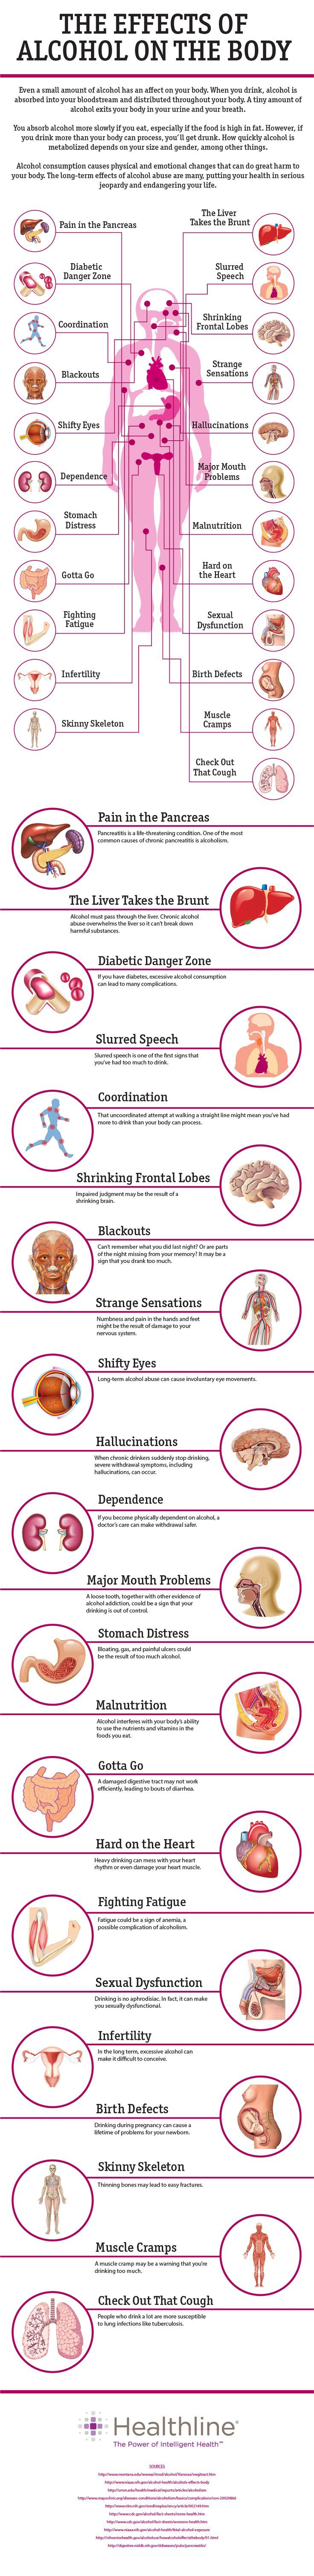 The effects of alcohol on the body     #health #healthcare http://www.1800usaverx.com/